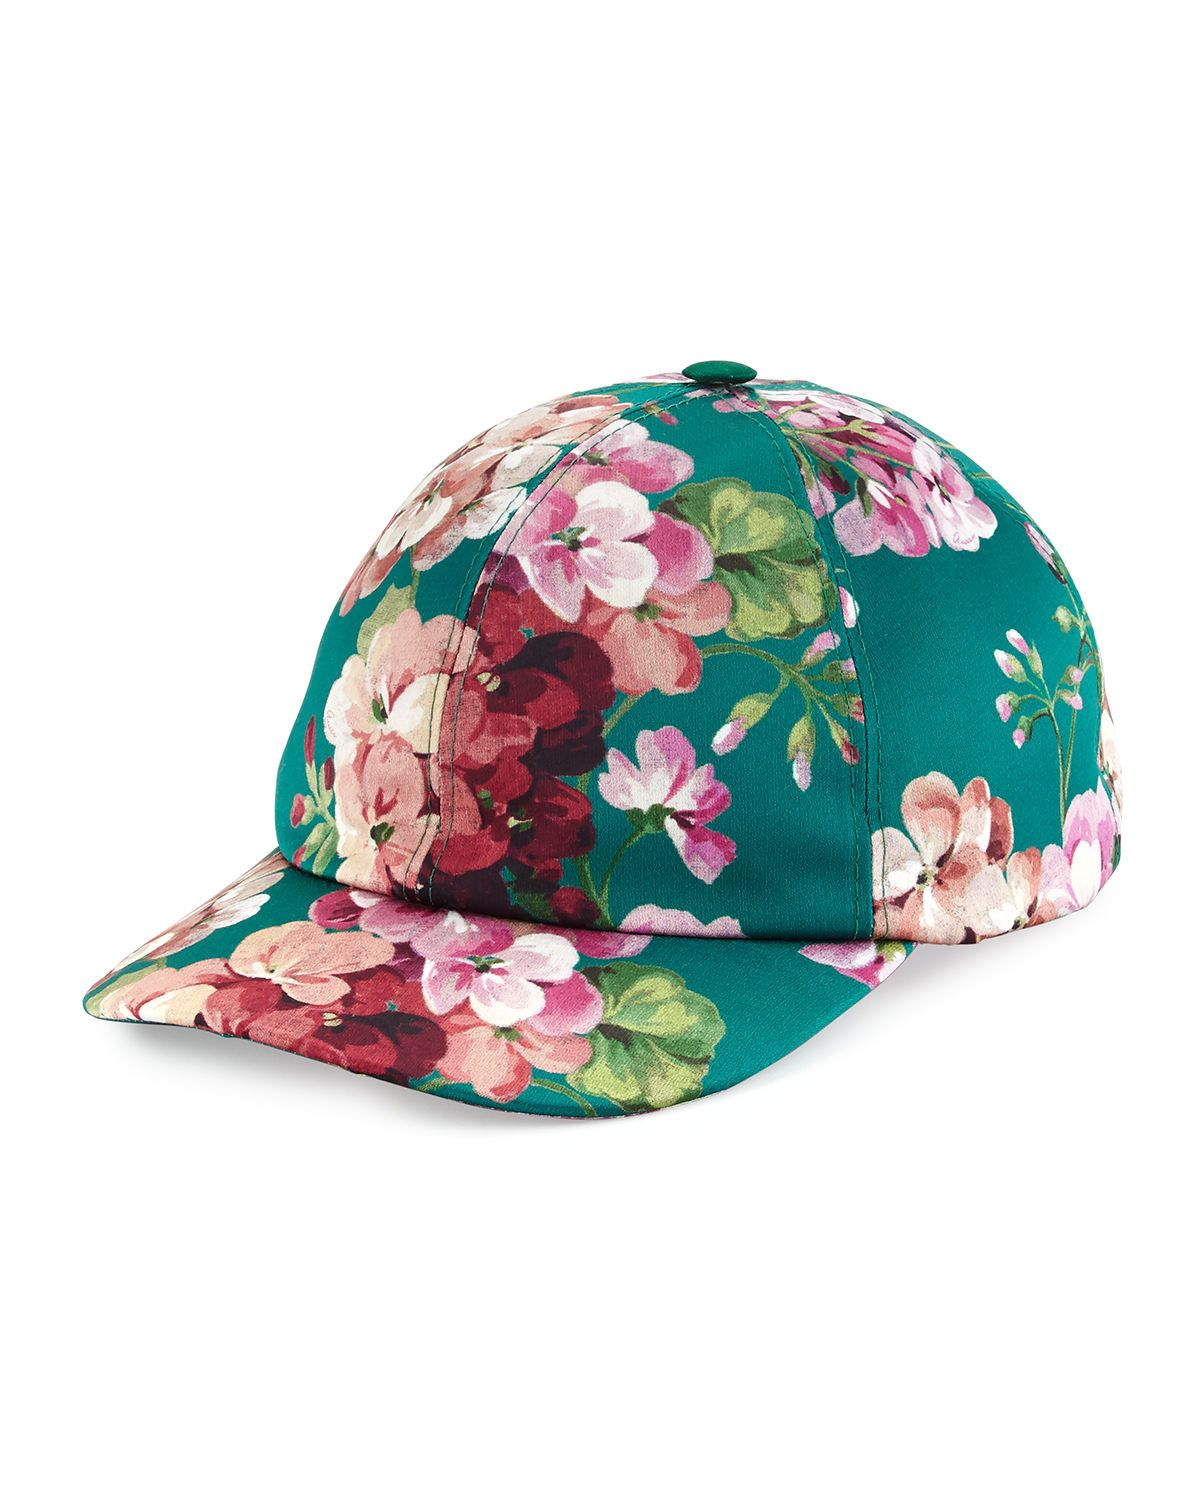 3f61253cdf9 Gucci satin baseball cap in floral print. Paneled crown with top button.  Adjustable hat band. Narrow brim. Polyester. Made in Italy.